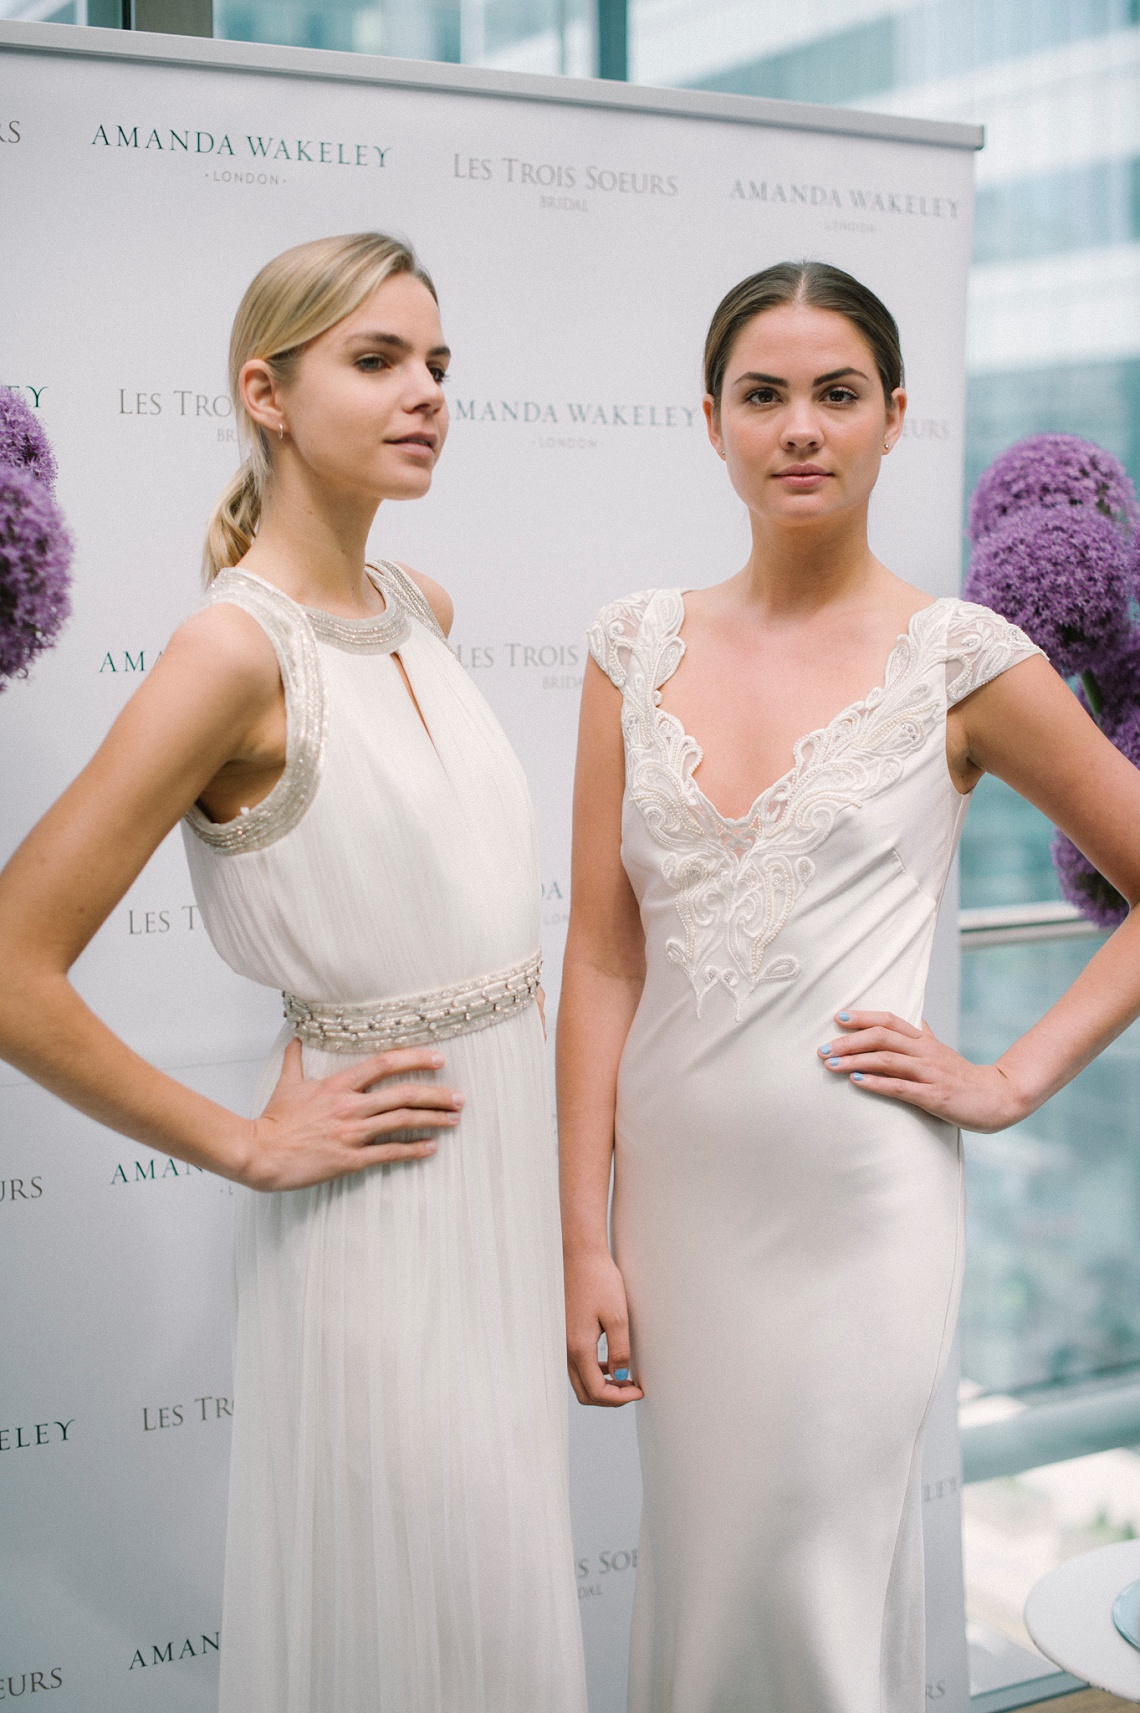 8e0ef1d2b2 We had the chance to speak to Amanda about her bridal brand and the new  collection at the event…